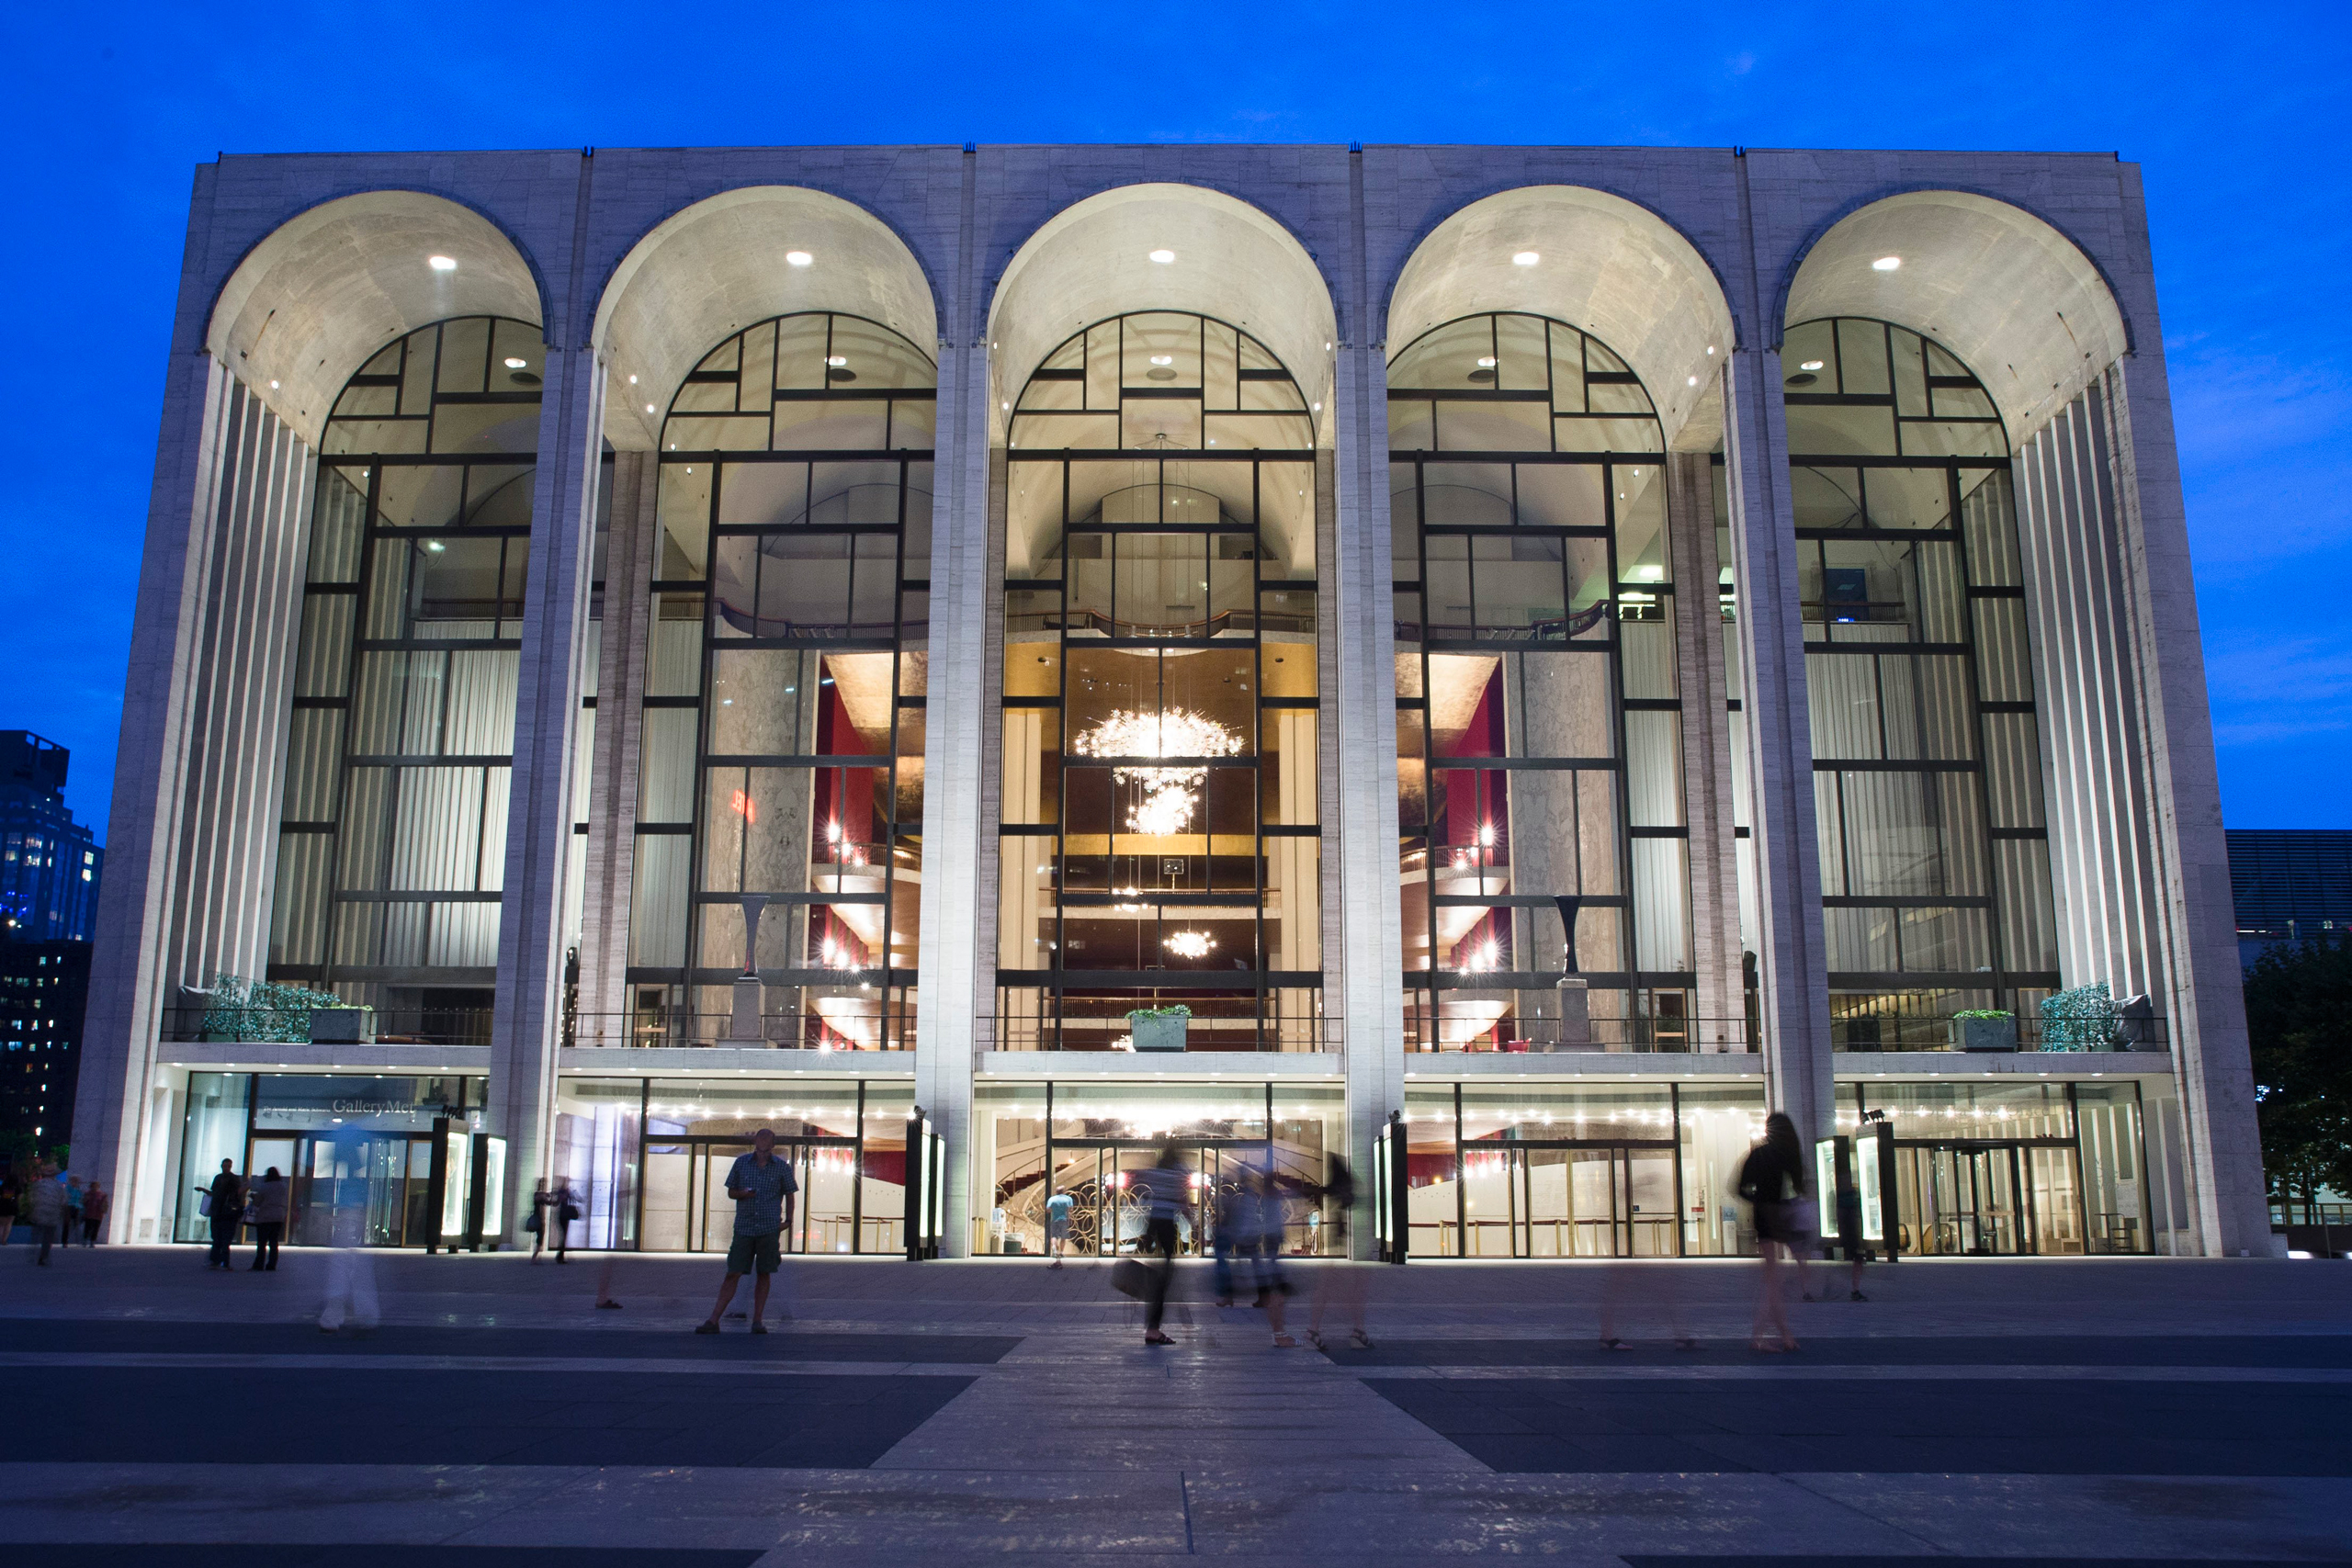 Tthe Metropolitan Opera house at New York's Lincoln Center on Aug. 1, 2014.